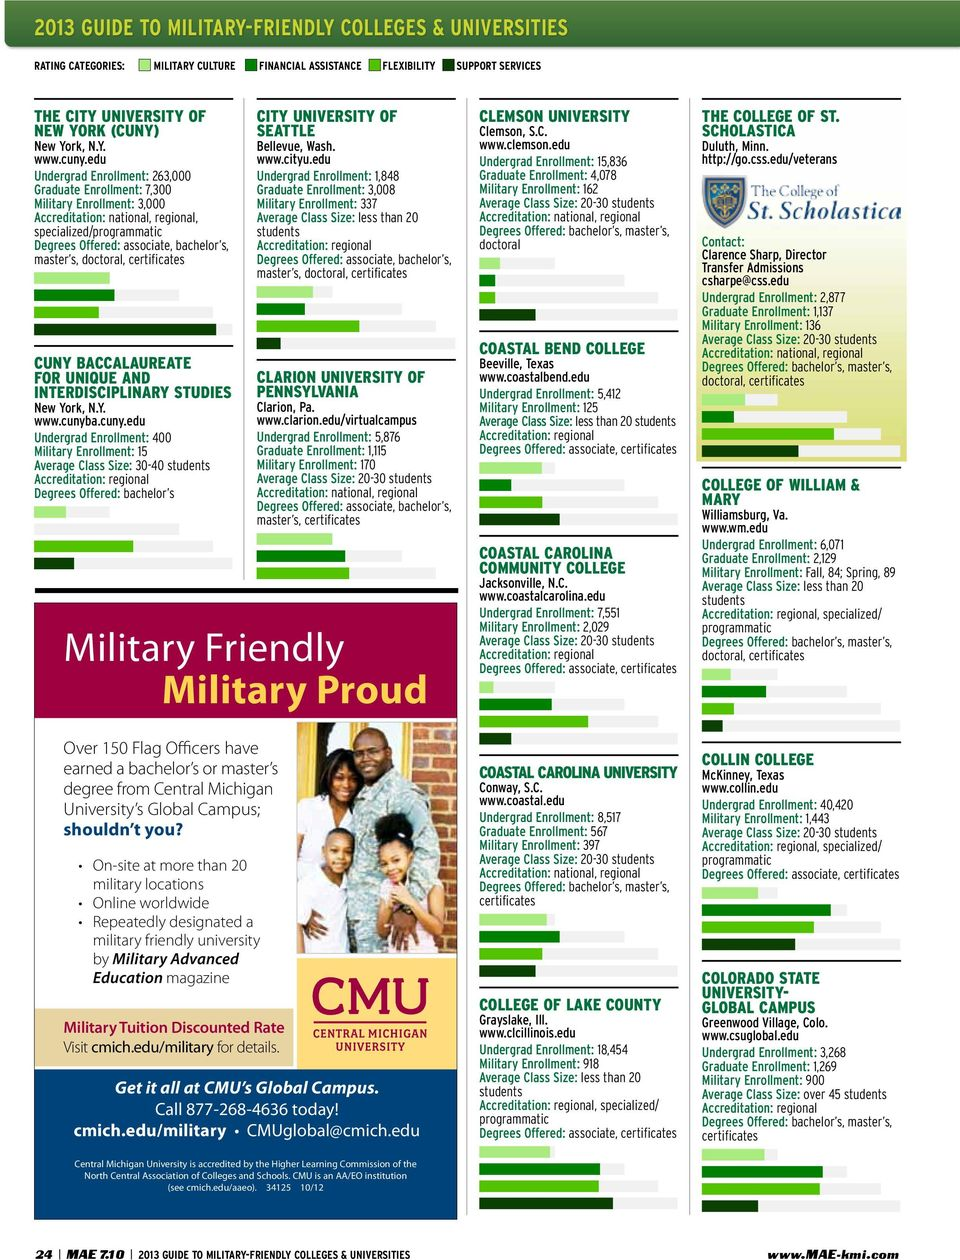 a.cuny.edu Undergrad Enrollment: 400 Military Enrollment: 15 Average Class Size: 30-40 Degrees Offered: bachelor s City of Seattle Bellevue, Wash. www.cityu.